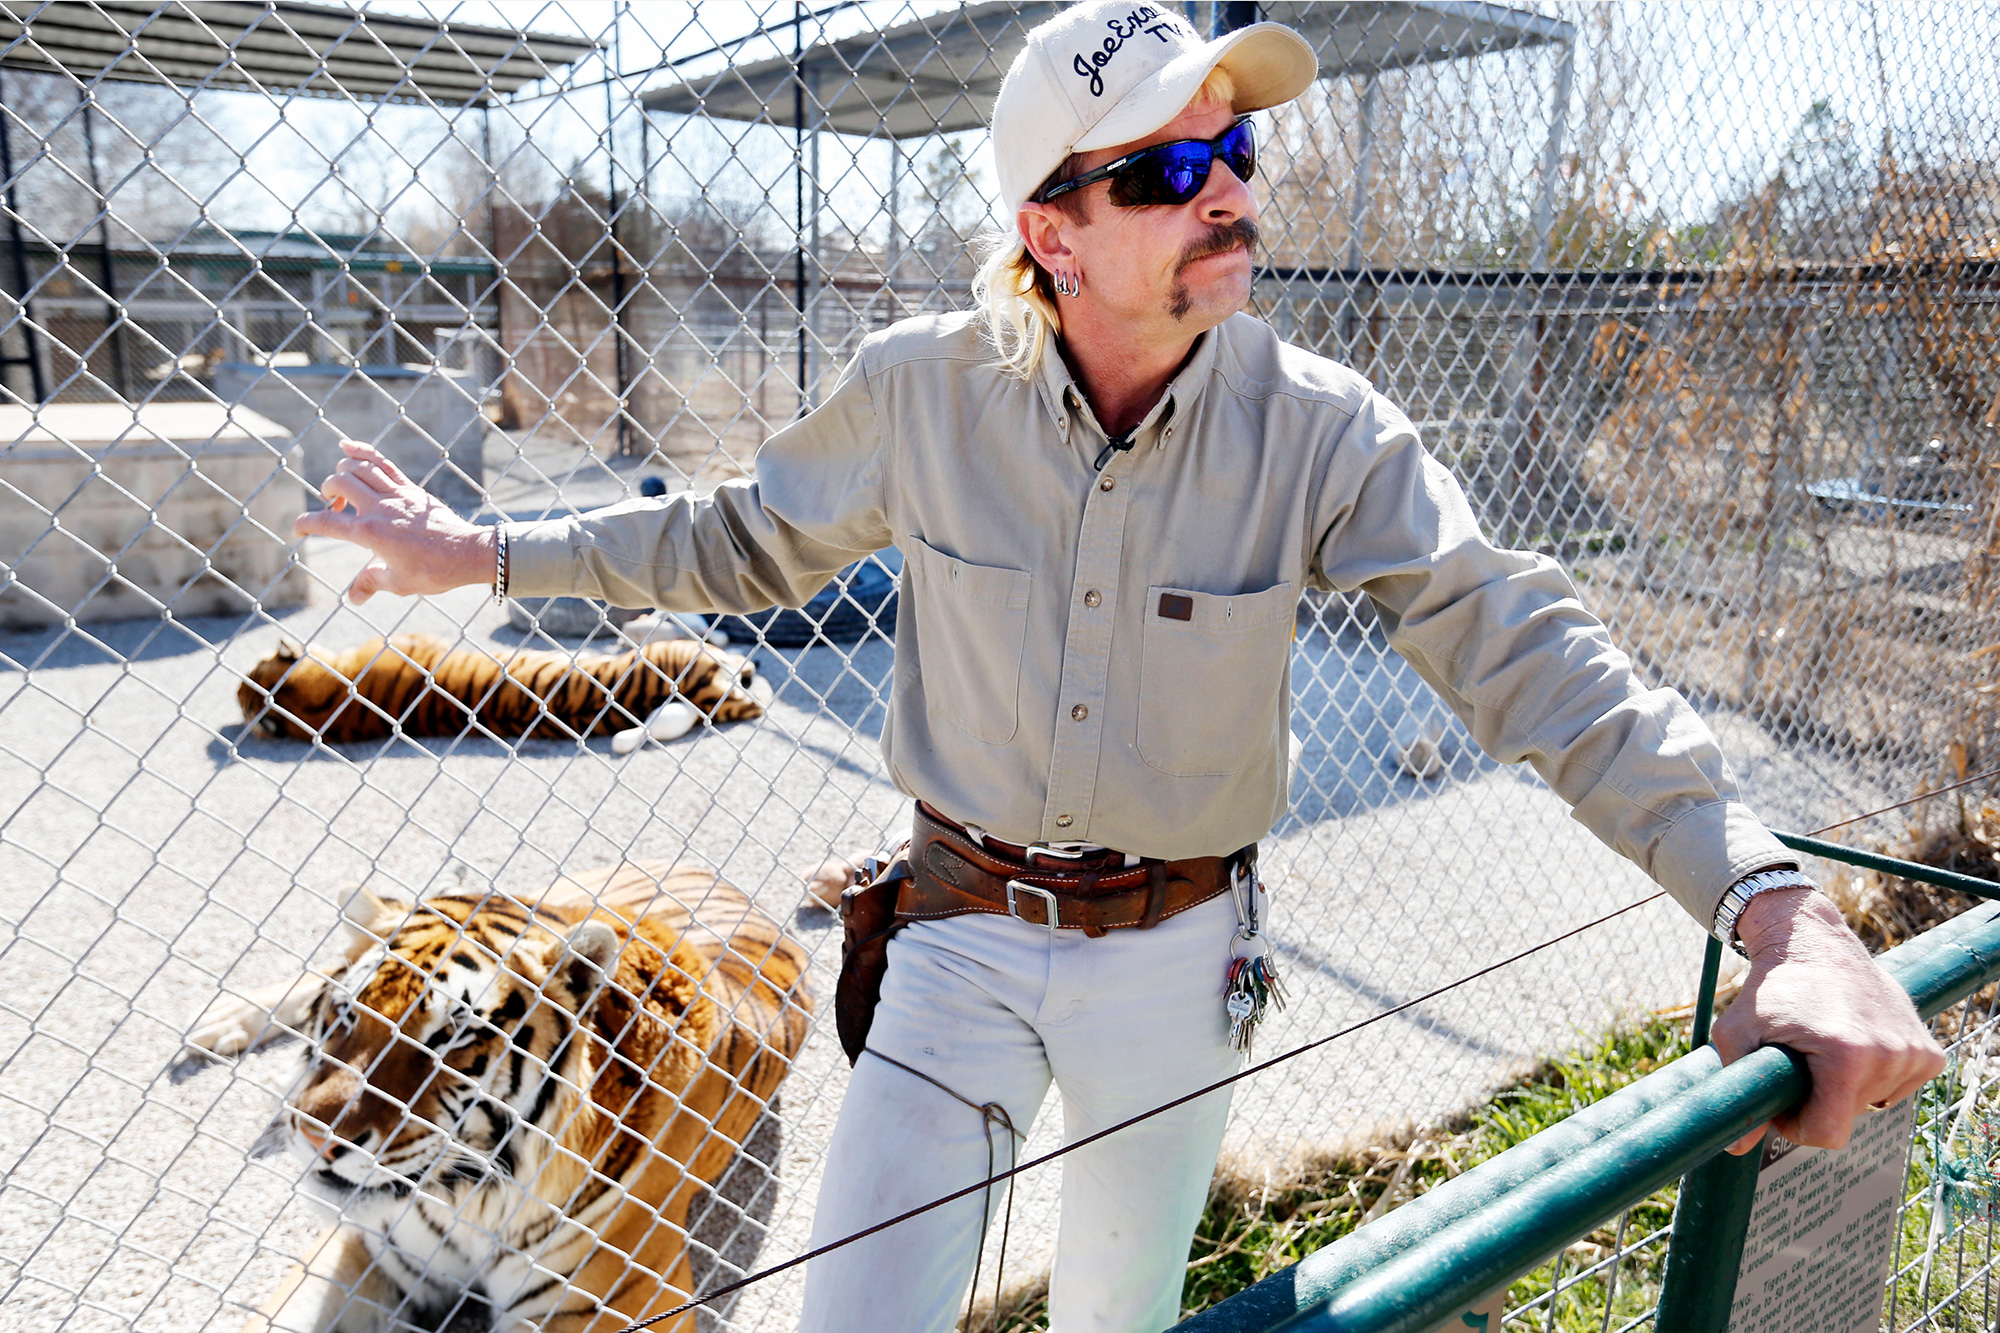 Joe Exotic The Tiger King GW Exotic Animal Park